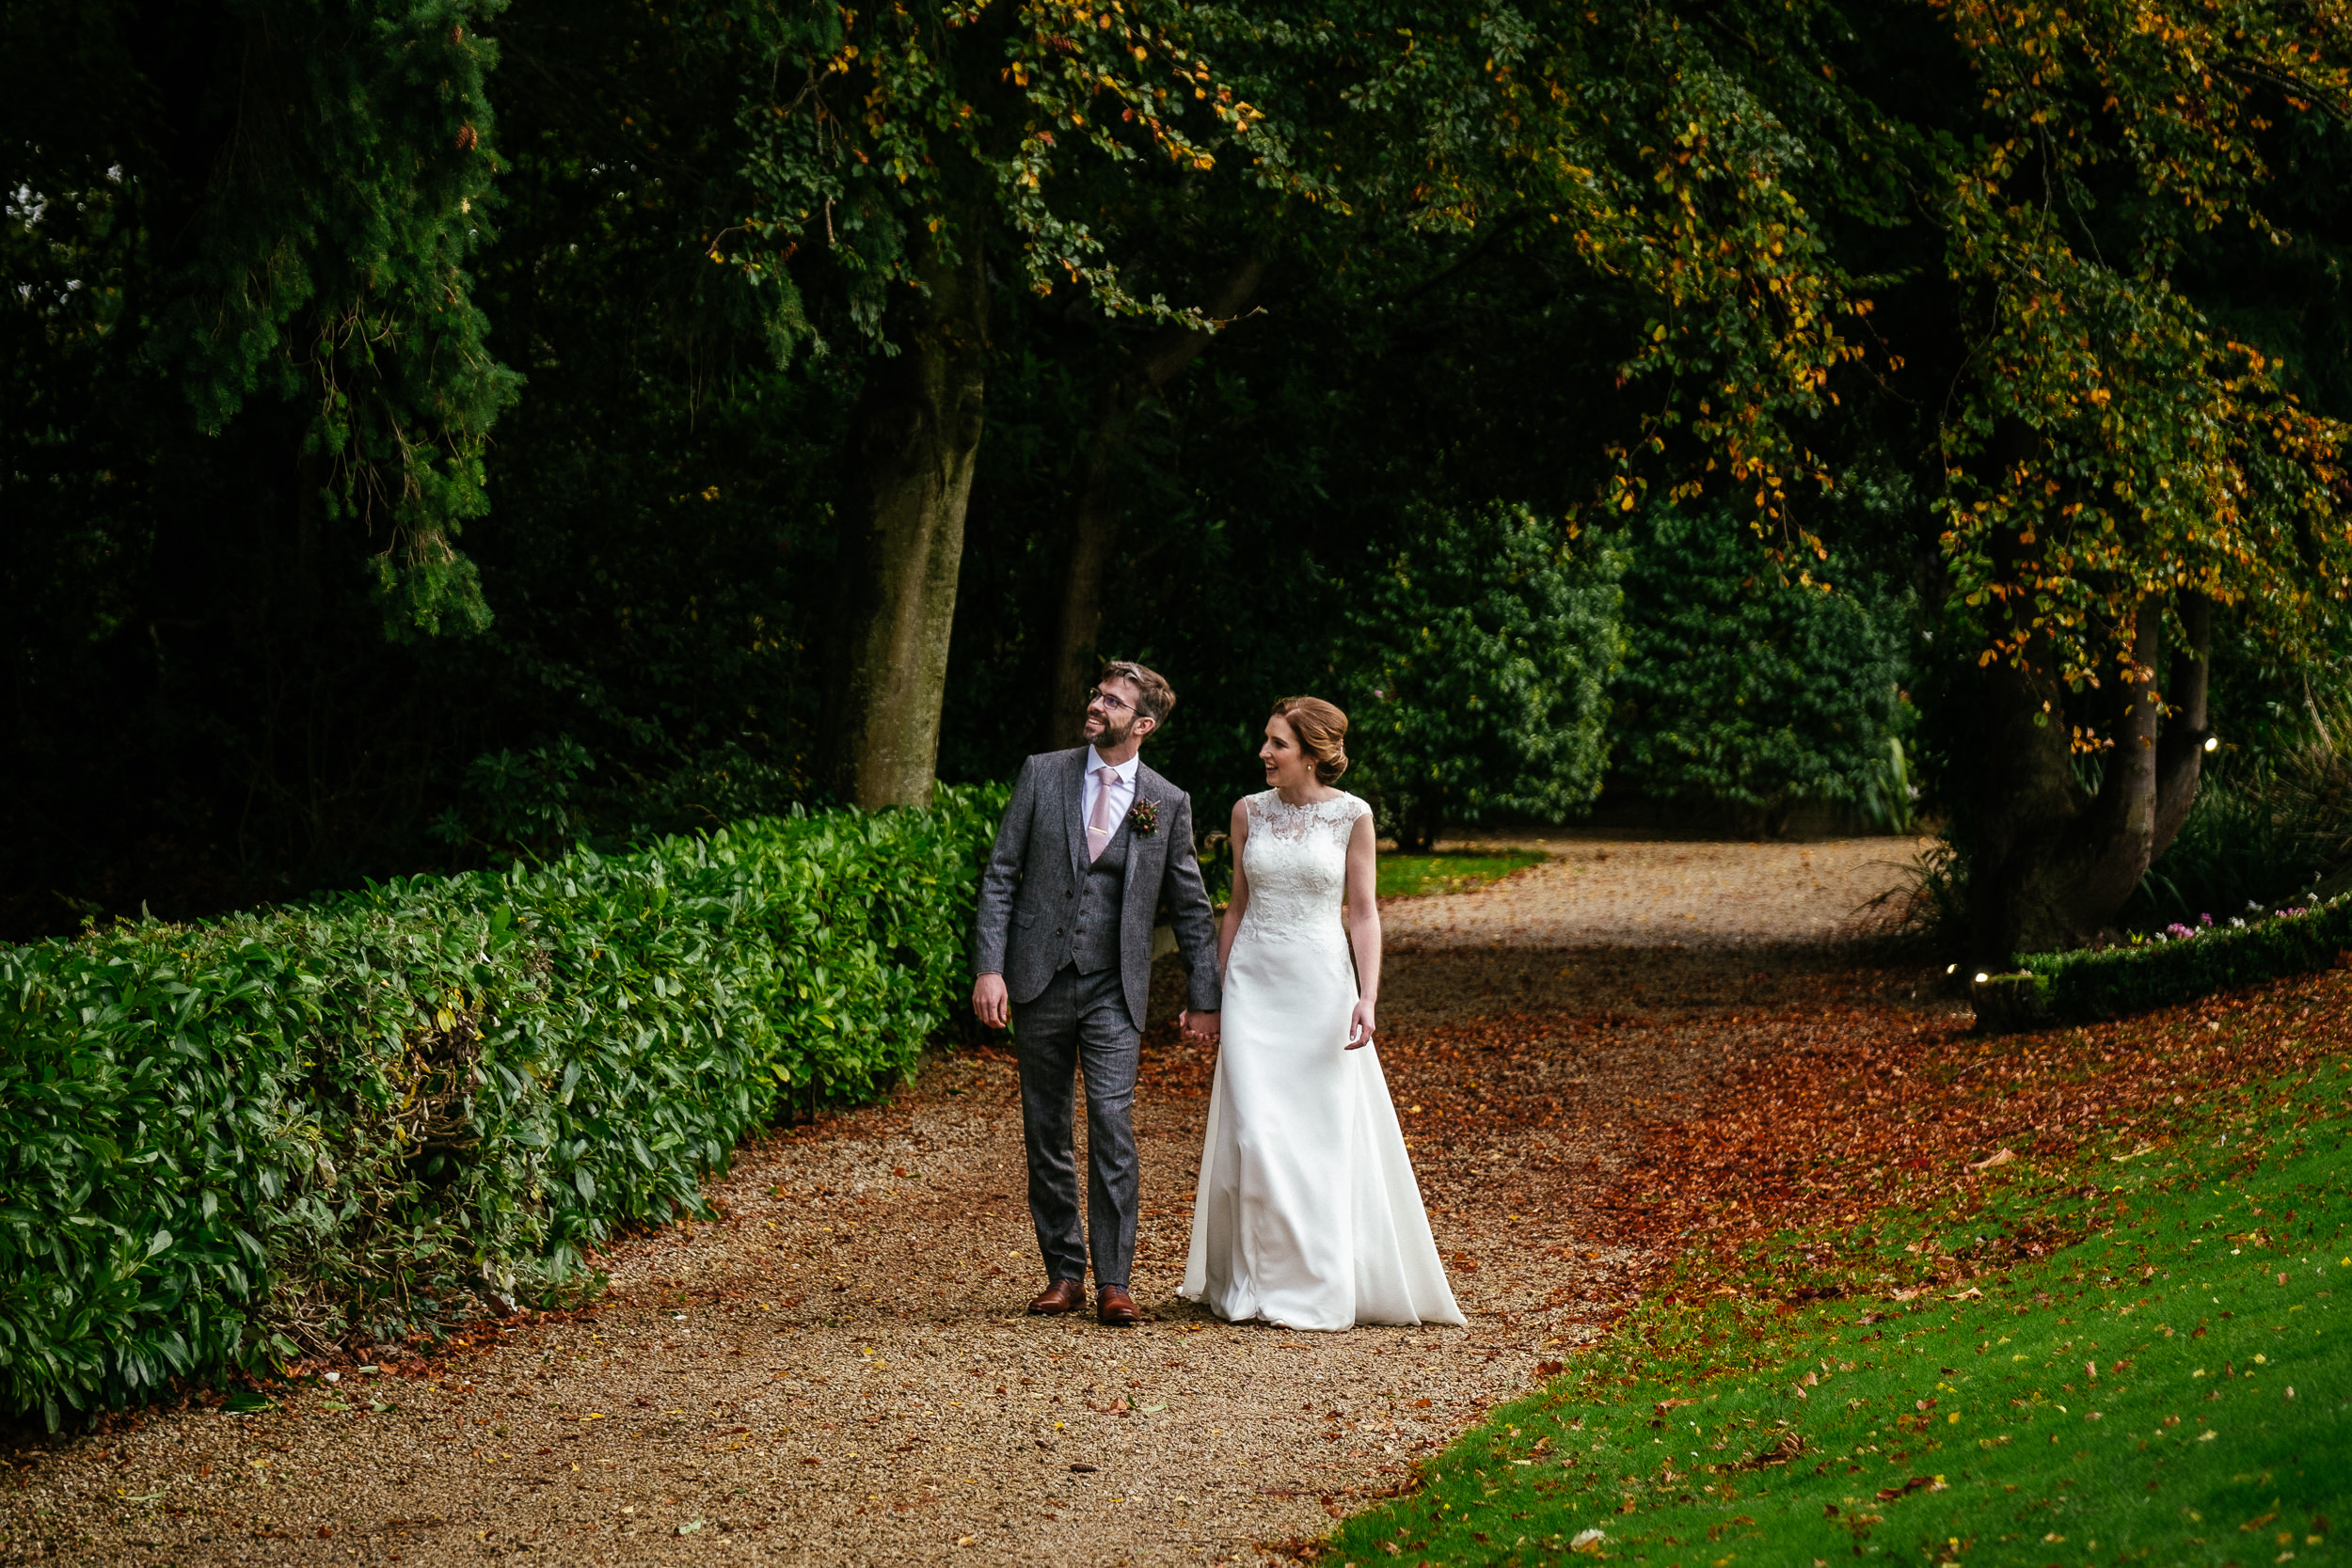 bride and groom walking in gardens of tinakilly house wedding